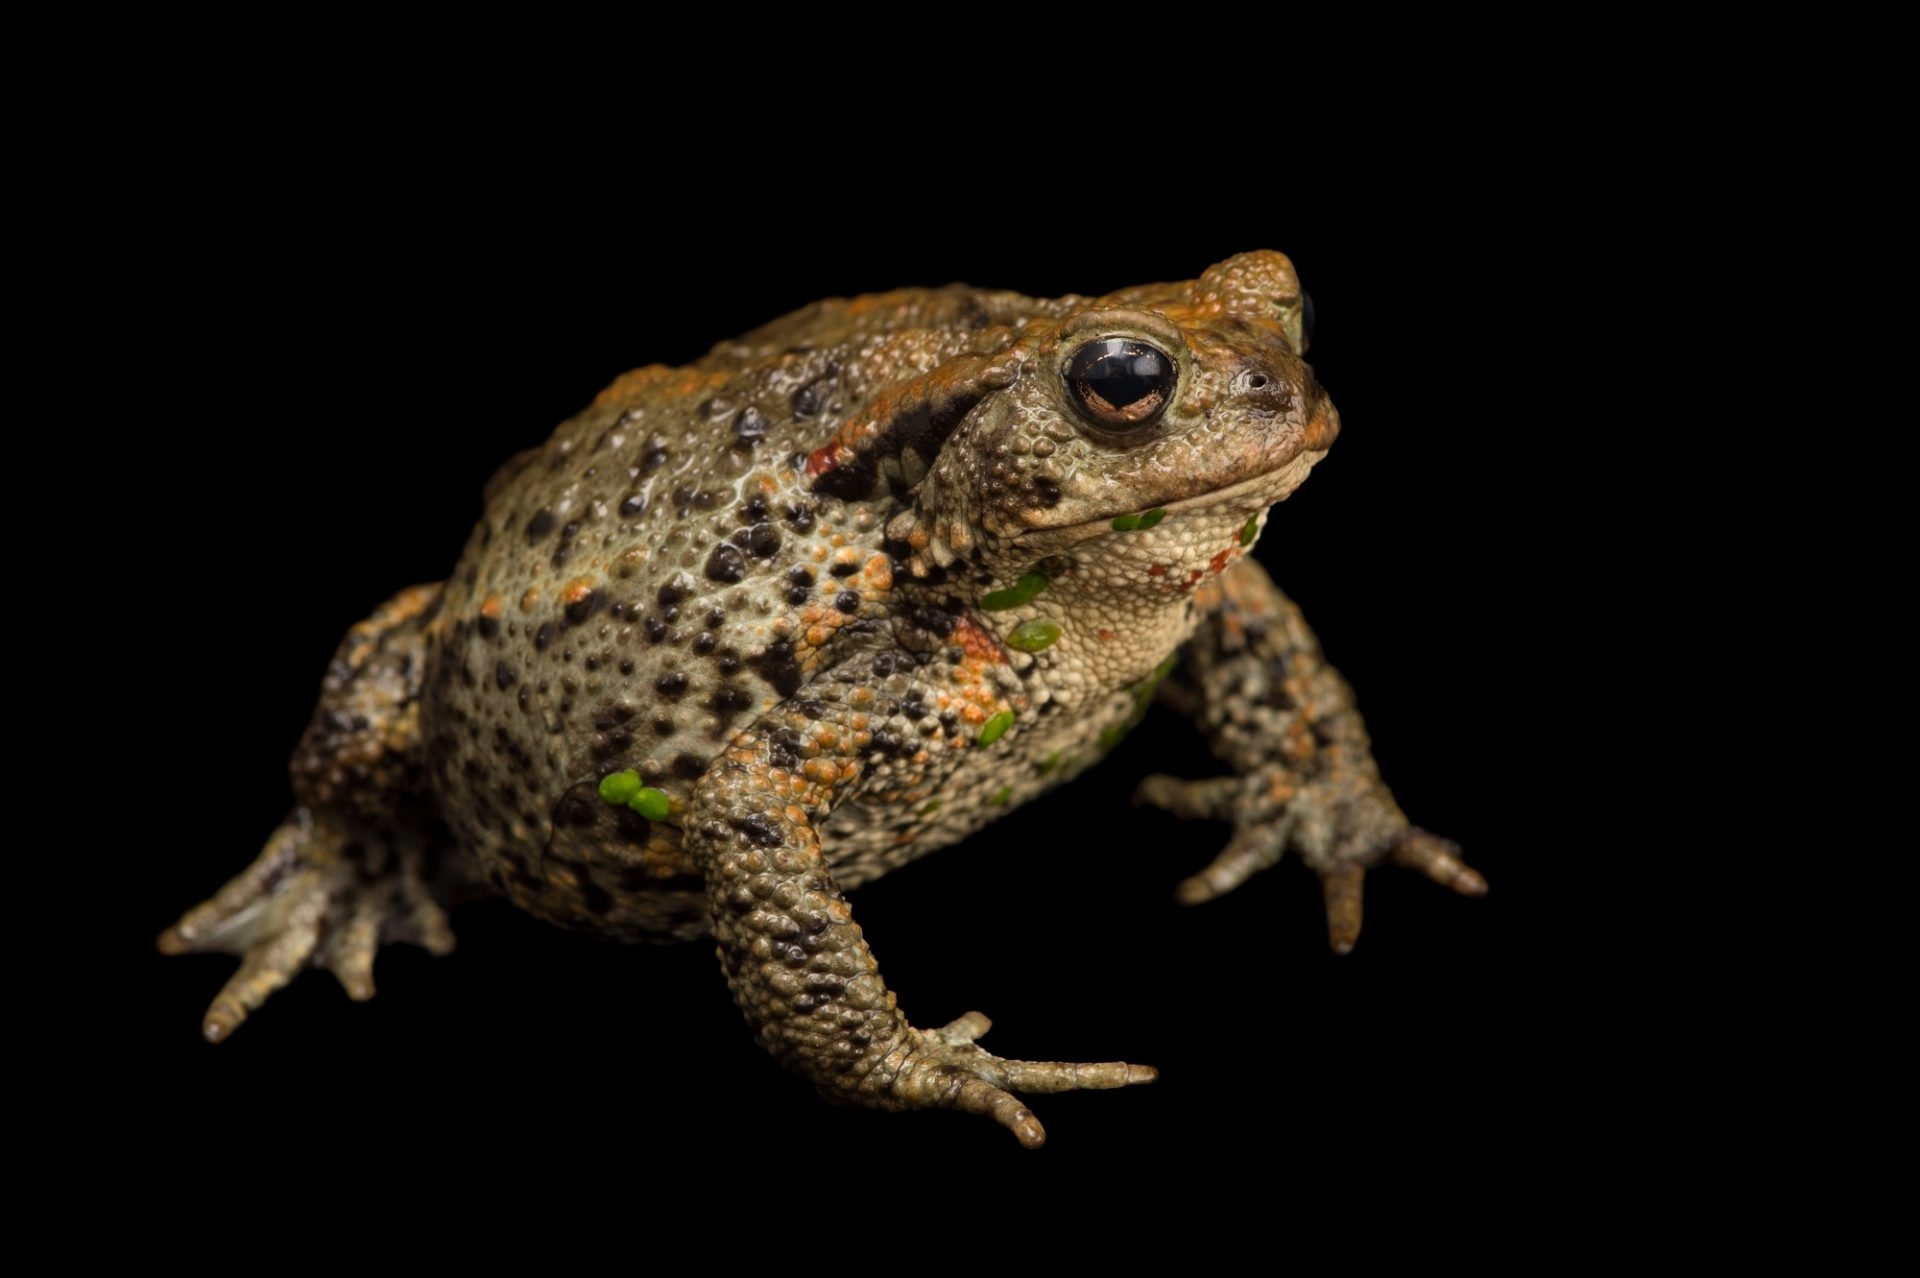 Photo: European toad (Bufo bufo) at the Plzen Zoo in the Czech Republic.